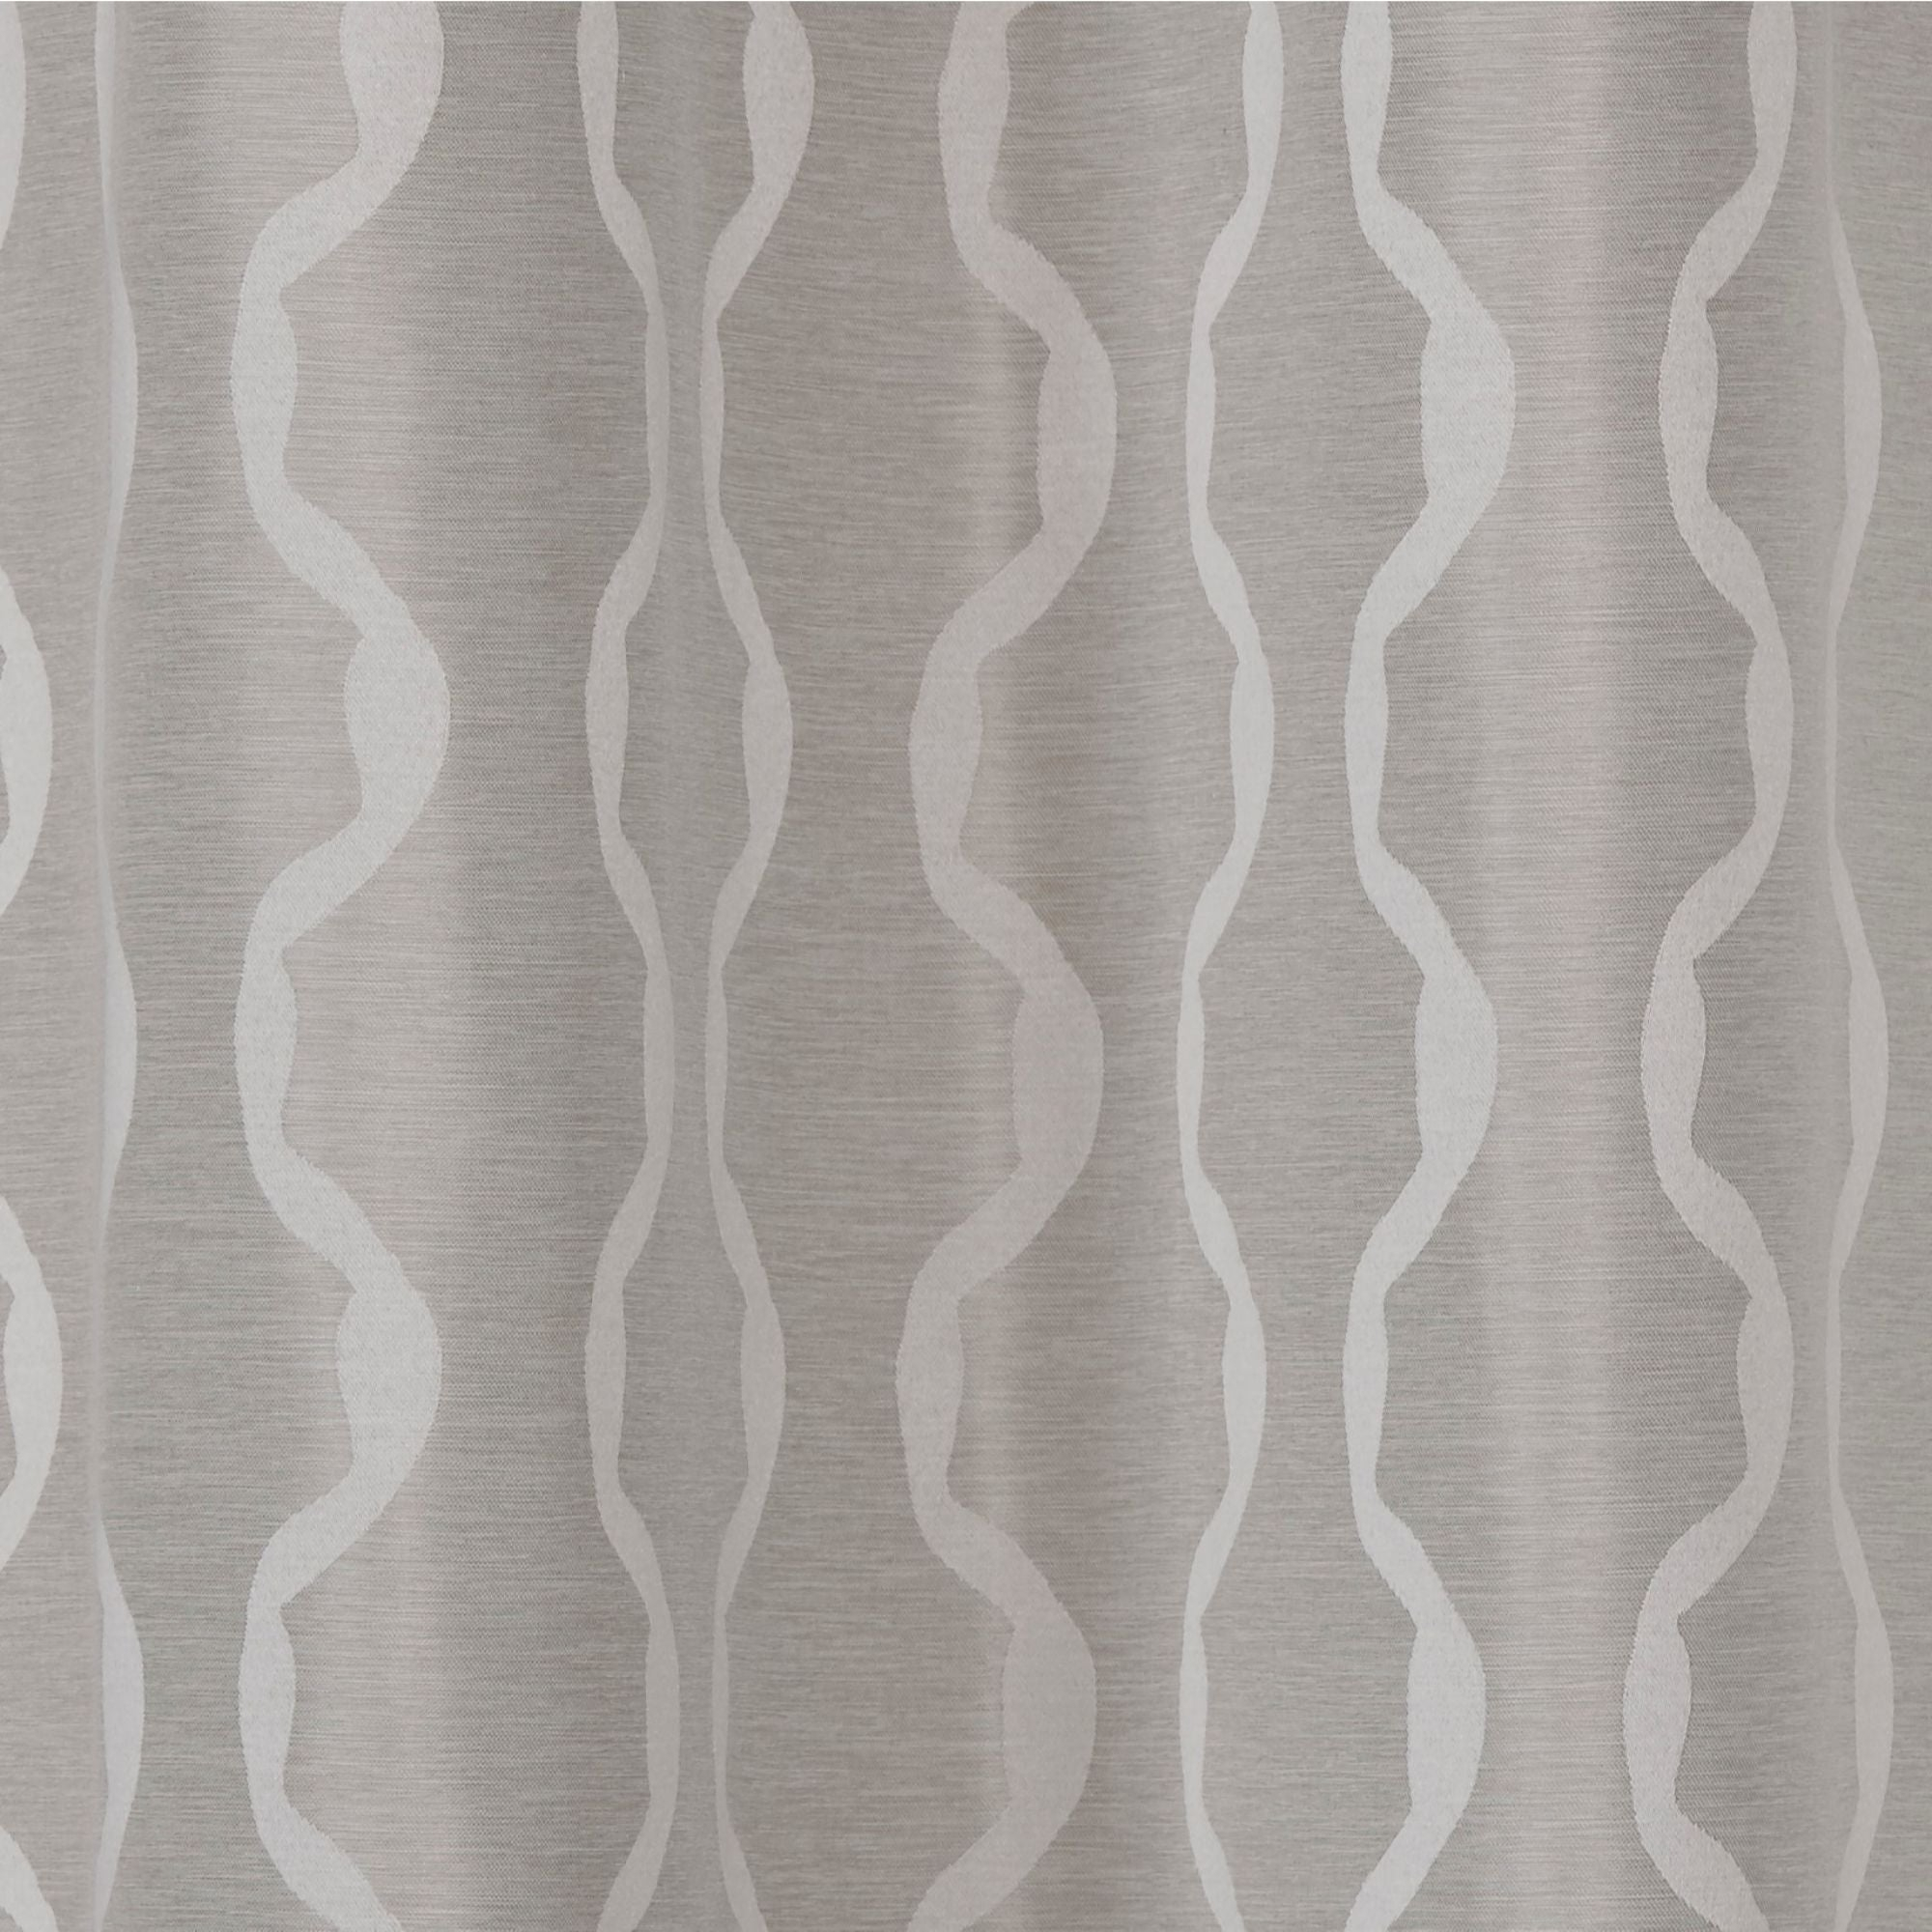 Ati Home Baroque Linen Grommet Top Curtain Panel Pair Pertaining To Baroque Linen Grommet Top Curtain Panel Pairs (View 9 of 20)